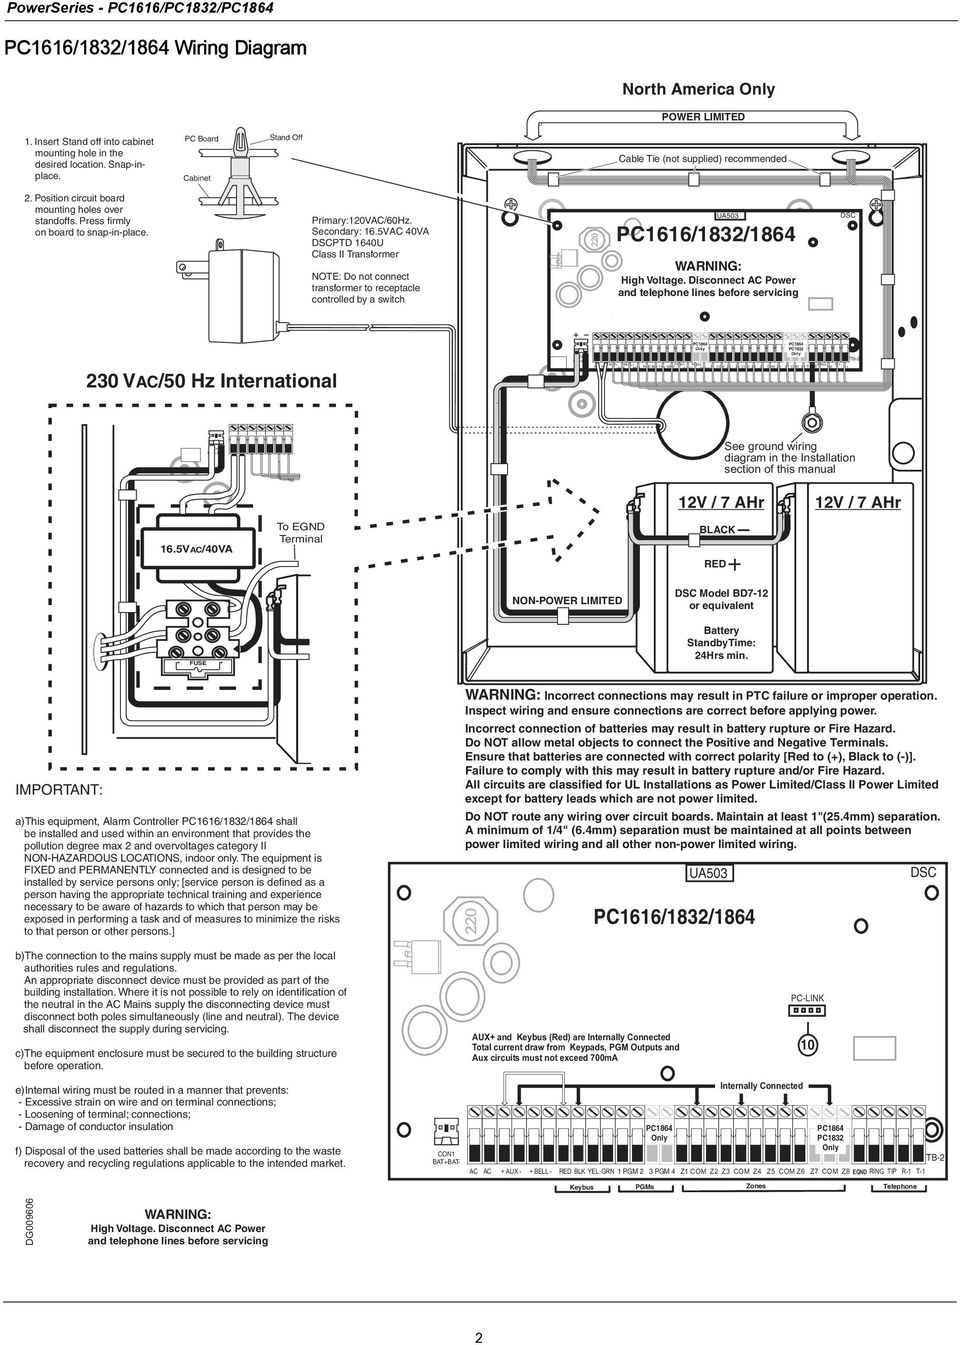 Pc 1616 Wiring Diagram And Schematics Dsc Pc1832 Pc1616 Kit Source Secondar Y 16 5vac 40va Dscptd 1640u Cl Ii Tr Ansf Or Mer No Te